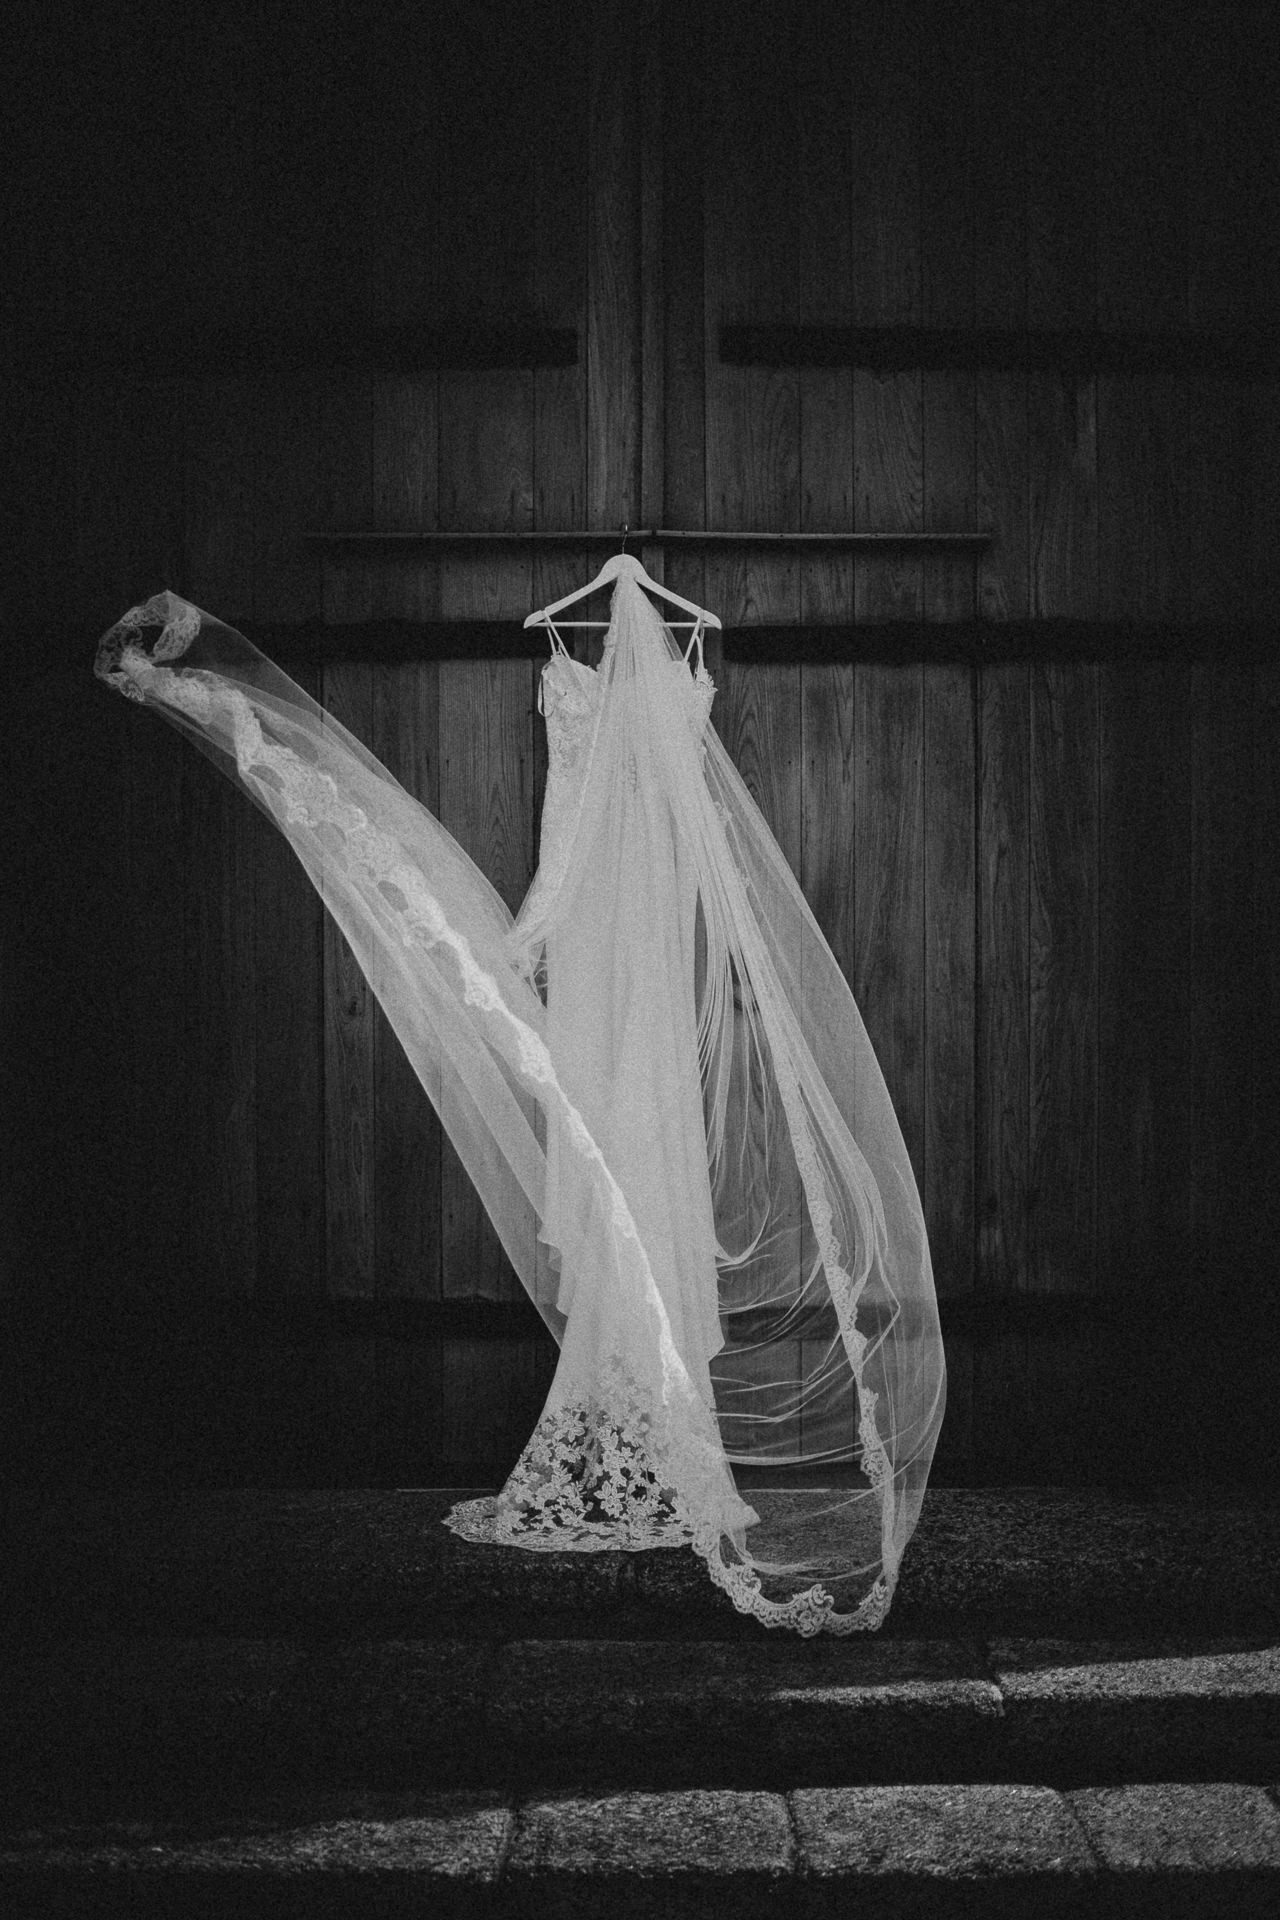 0025-DEVON-SOMERSET-WEDDING-PHOTOGRAPHER-0087-BEST-OF-2019-LOUISE-MAY-DEVON-SOMERSET-WEDDING-PHOTOGRAPHY-LM1_6224